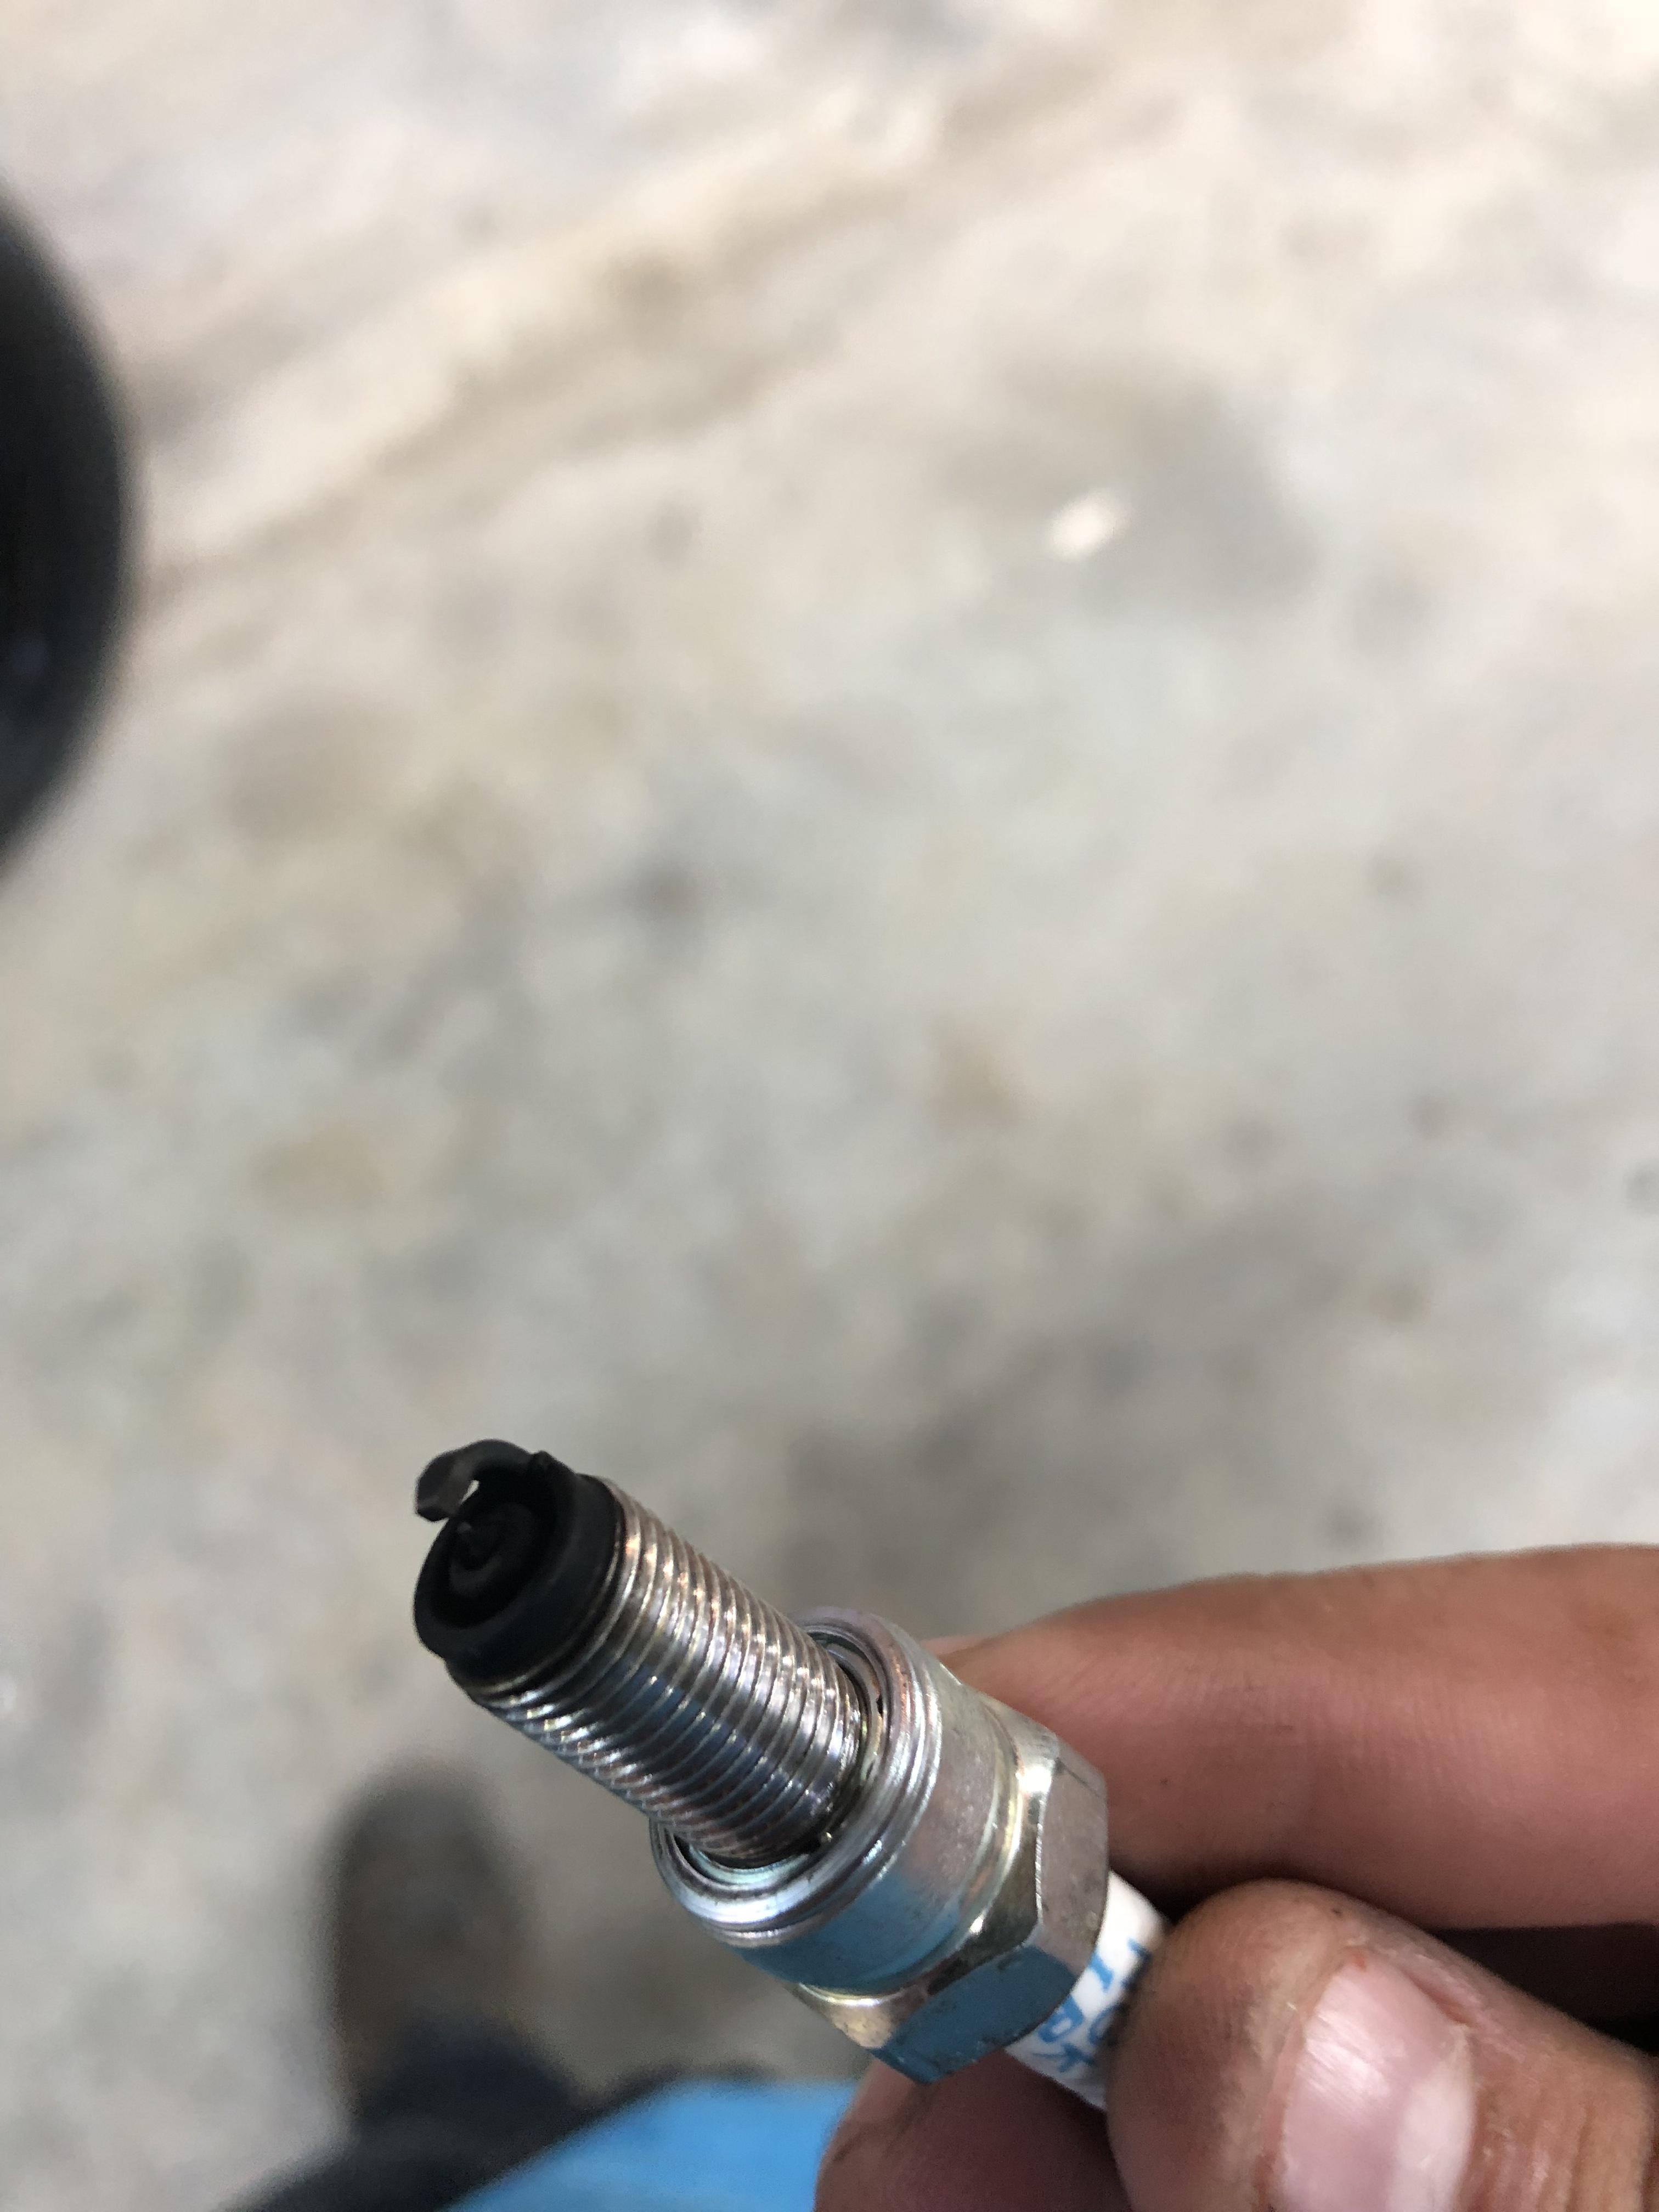 Zx14 Stutter Problem Zx Forums Fuel Filter Click Image For Larger Version Name Ba31d864 4be2 4347 Ad25 Bd1f77412ee7 1537833179628